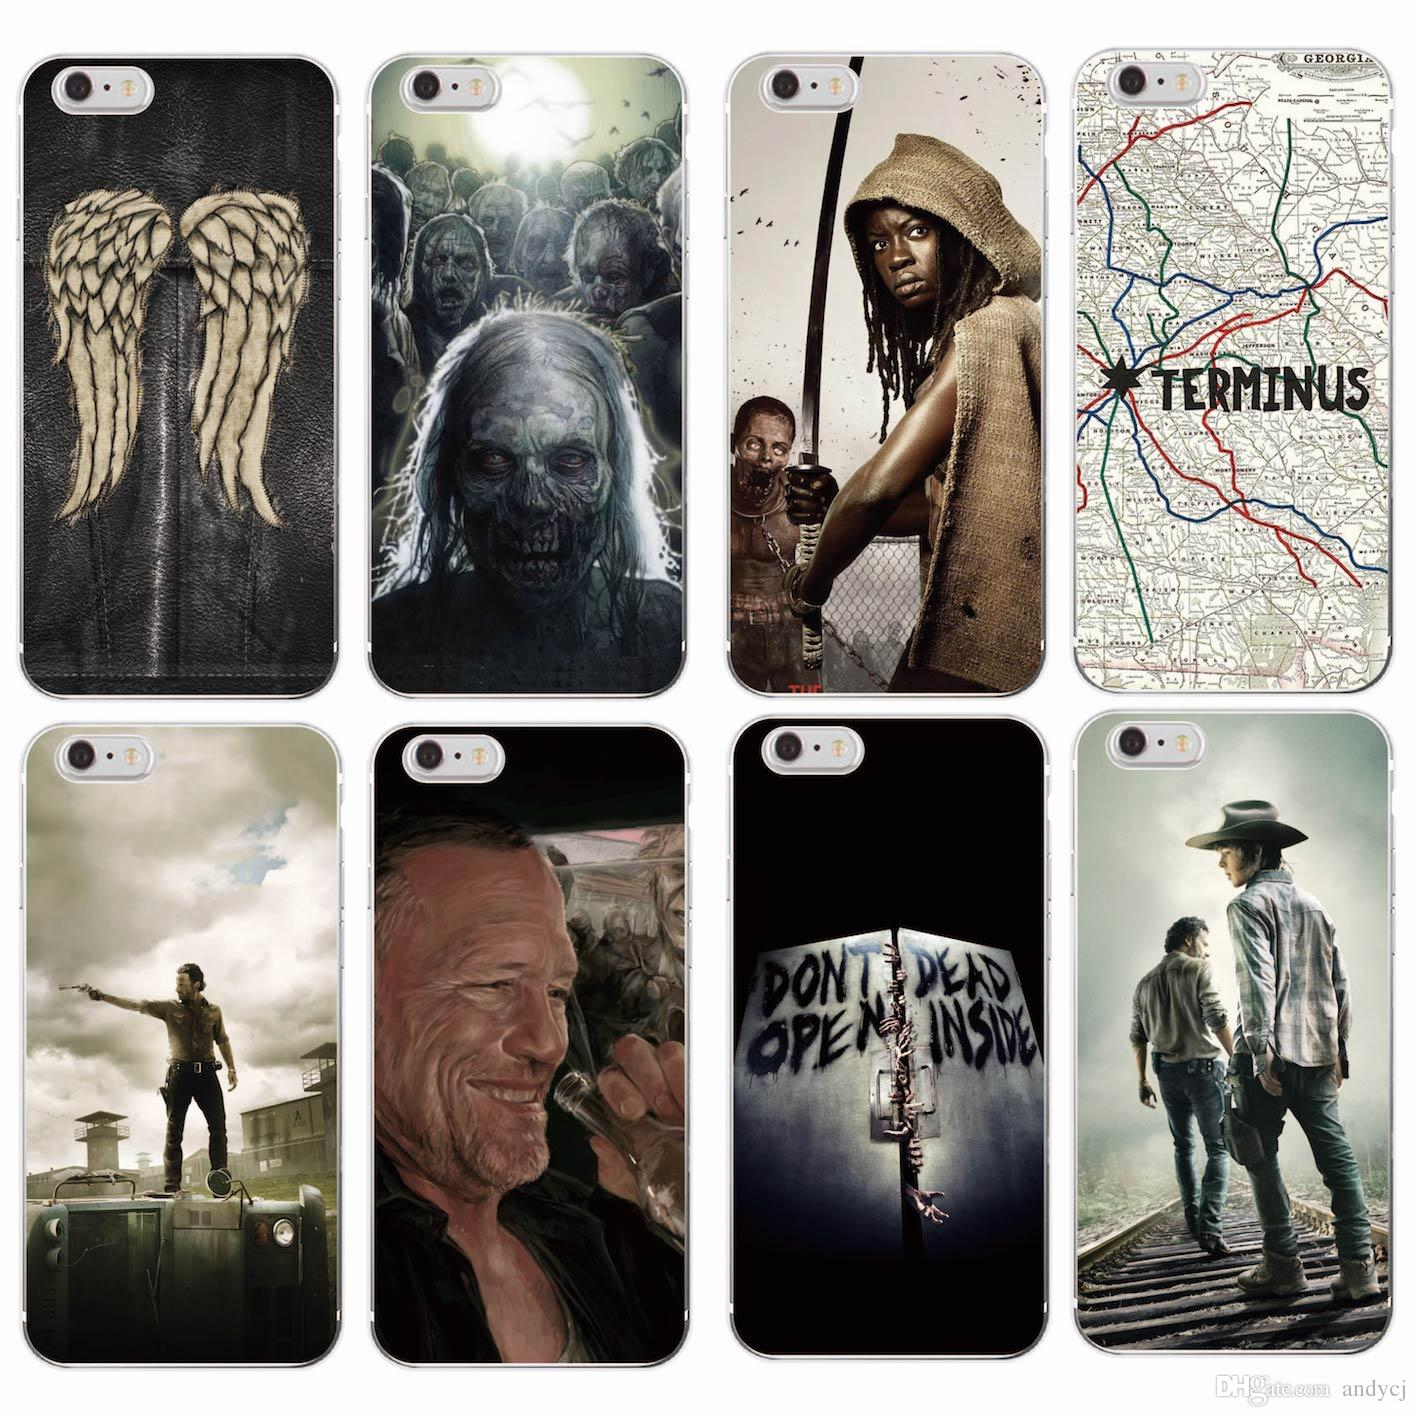 ... Dead Zombie Rick Daryl Dixon Wings Soft Phone Case - 1417x1417 - jpeg